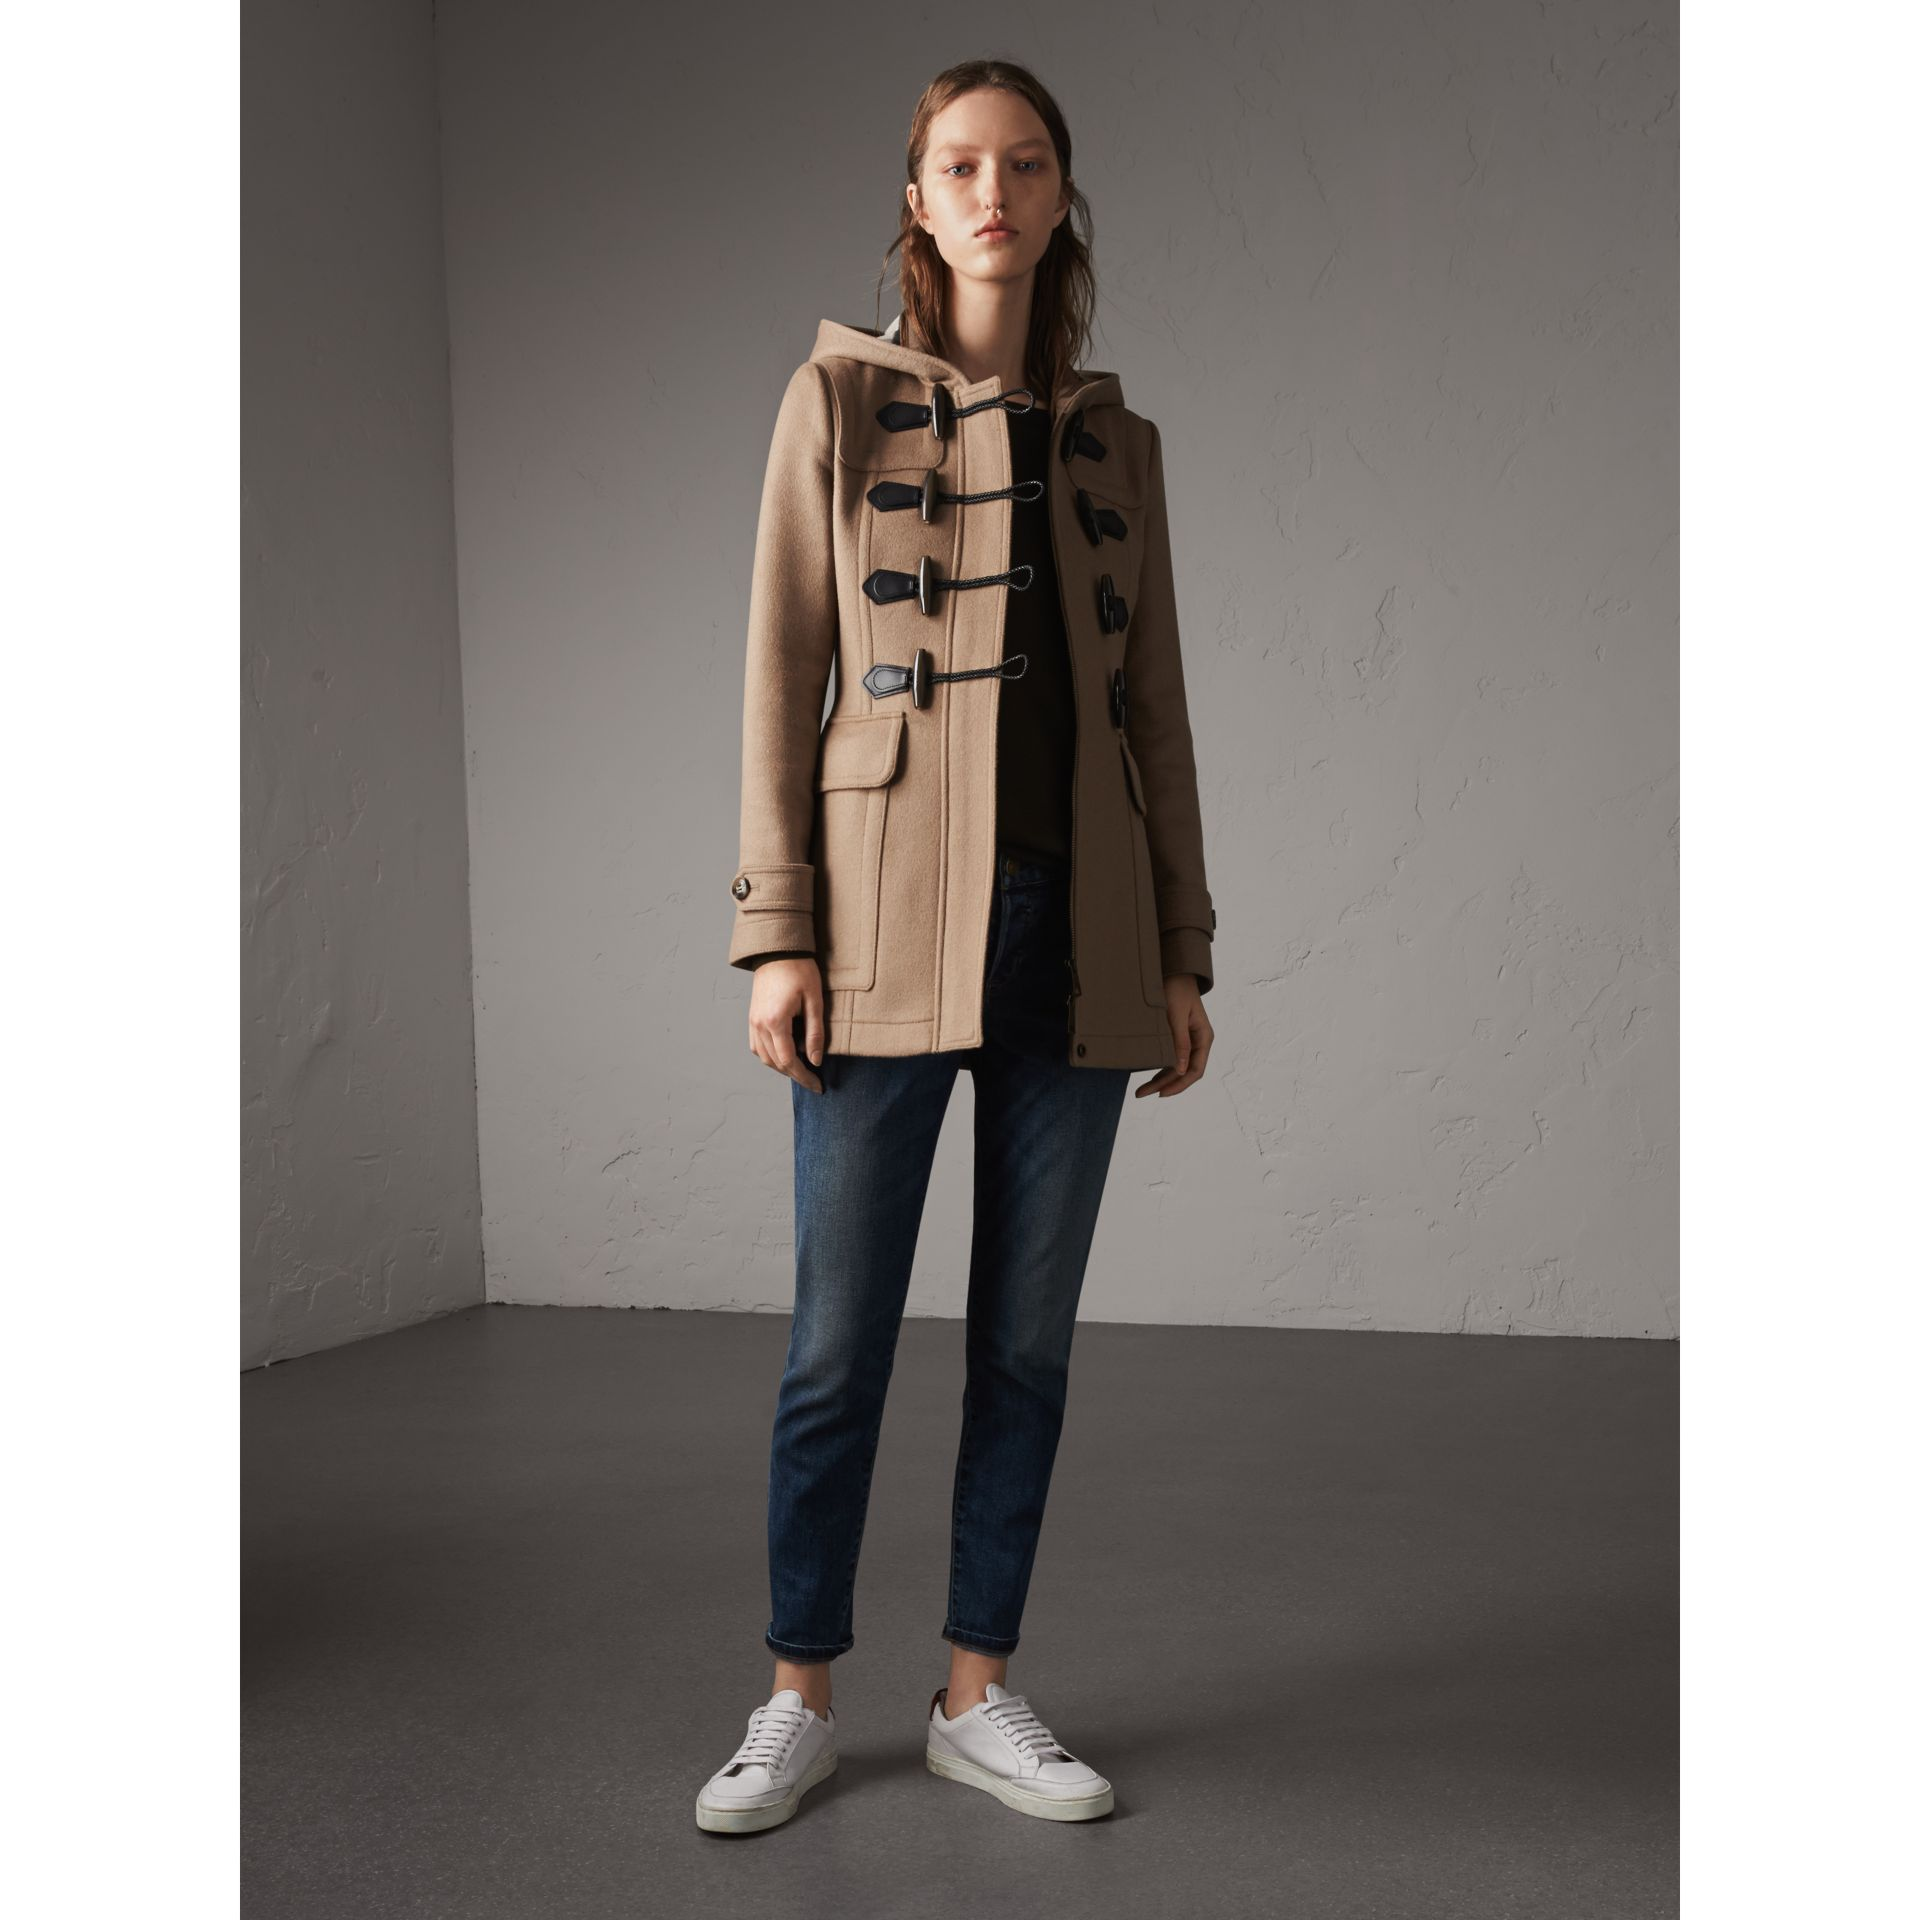 Fitted Wool Duffle Coat in New Camel - Women | Burberry Australia - gallery image 1